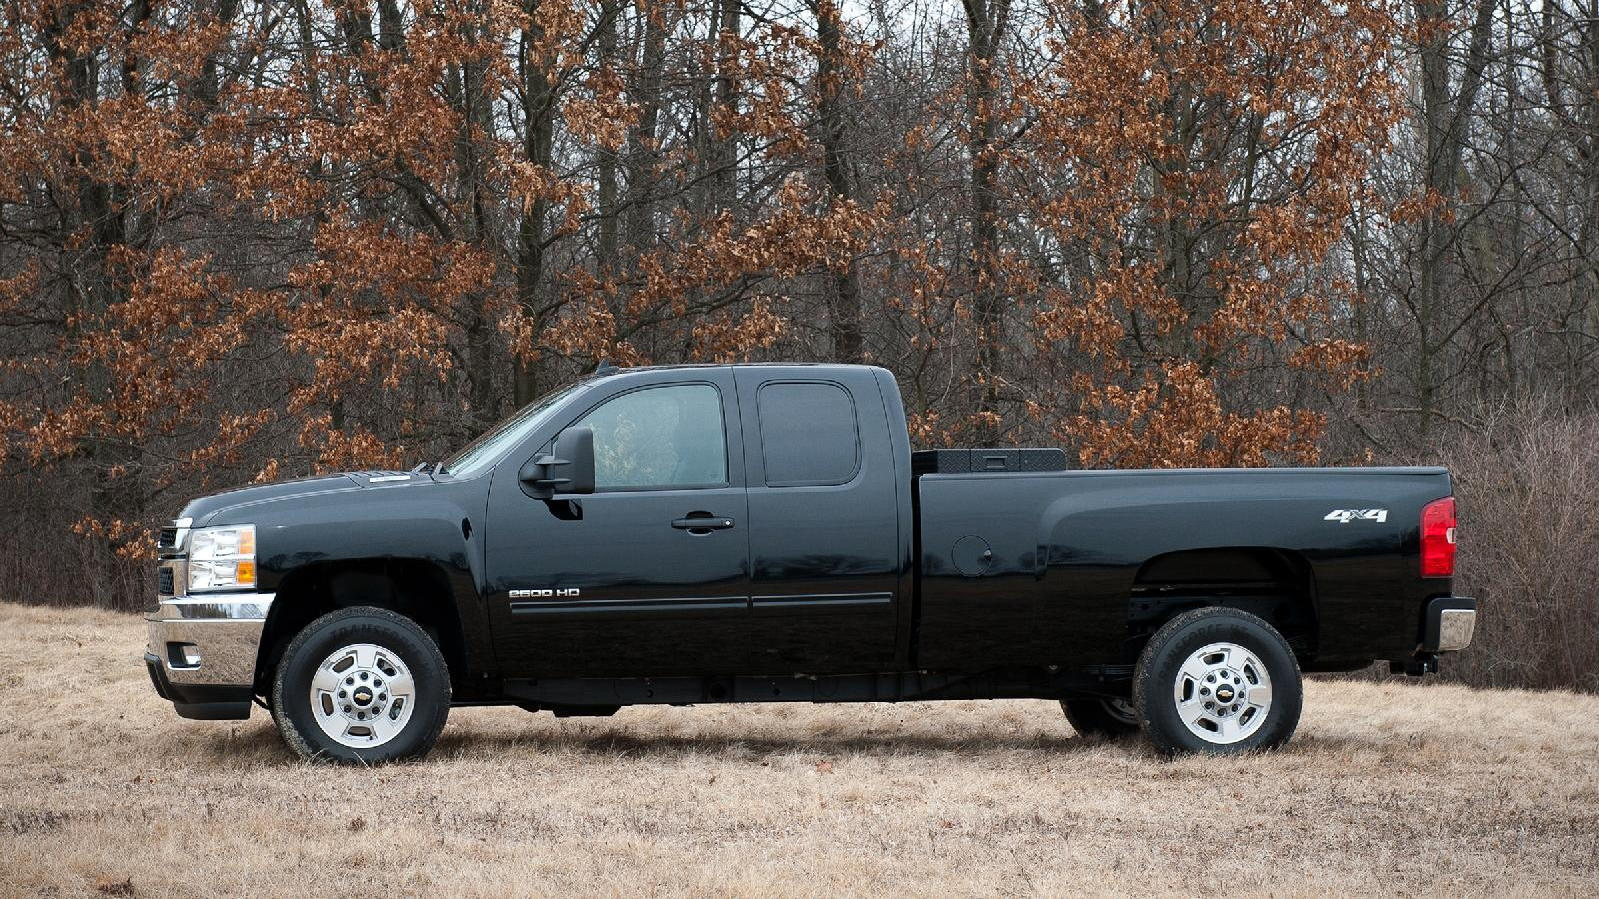 2013 Chevrolet Silverado 2500 HD bi-fuel (natural gas & gasoline) pickup truck